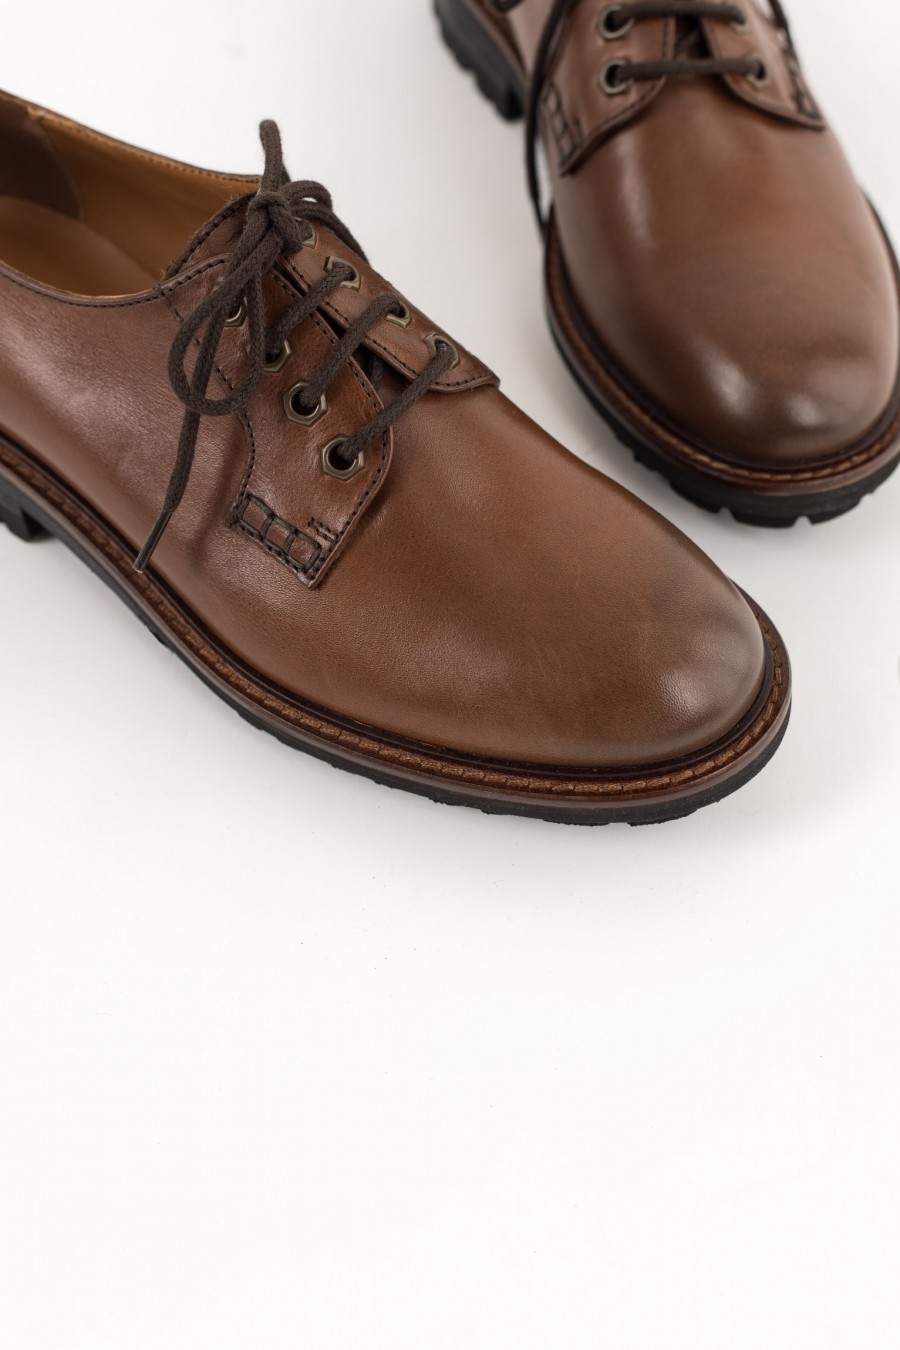 Brown rounded toe derby shoes